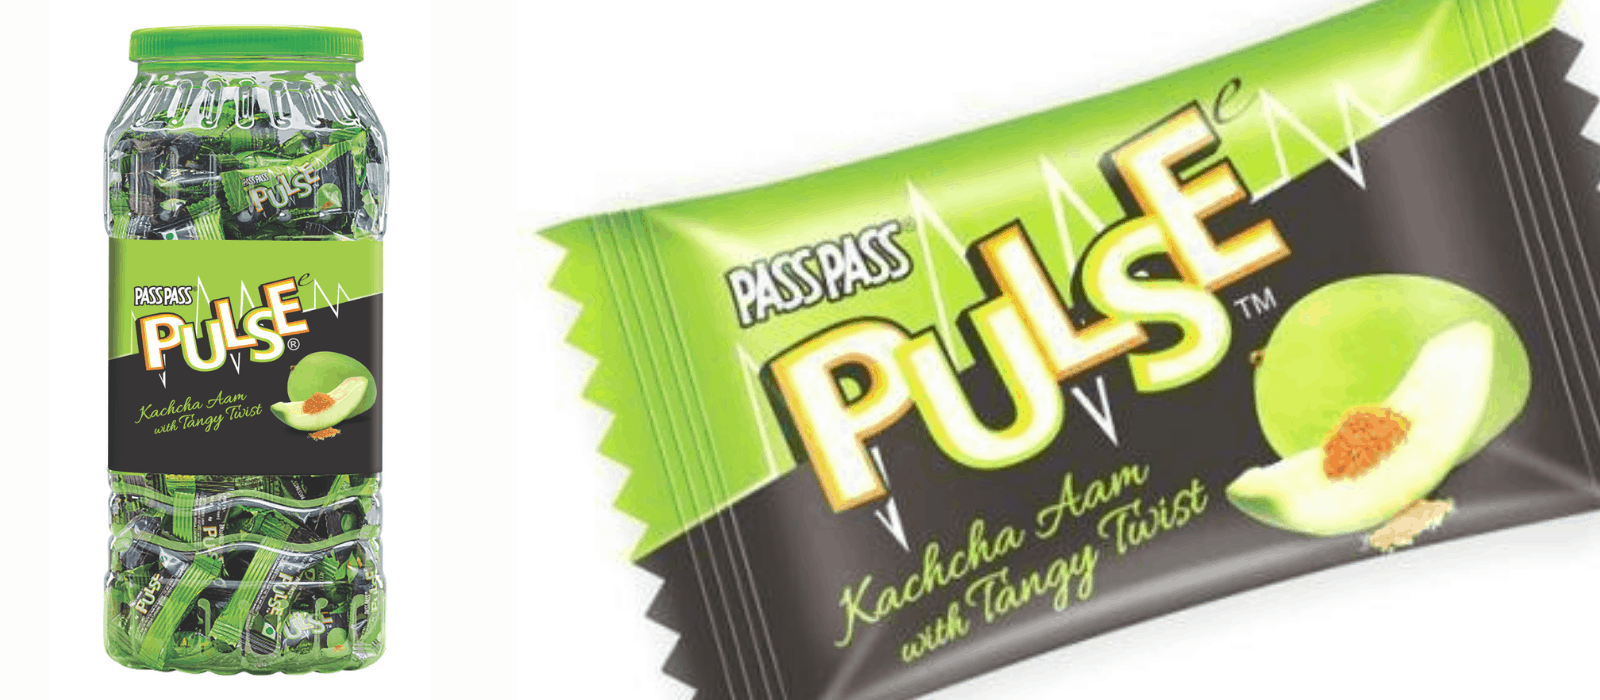 DS Group uses recycled-PET for its popular Pulse candy